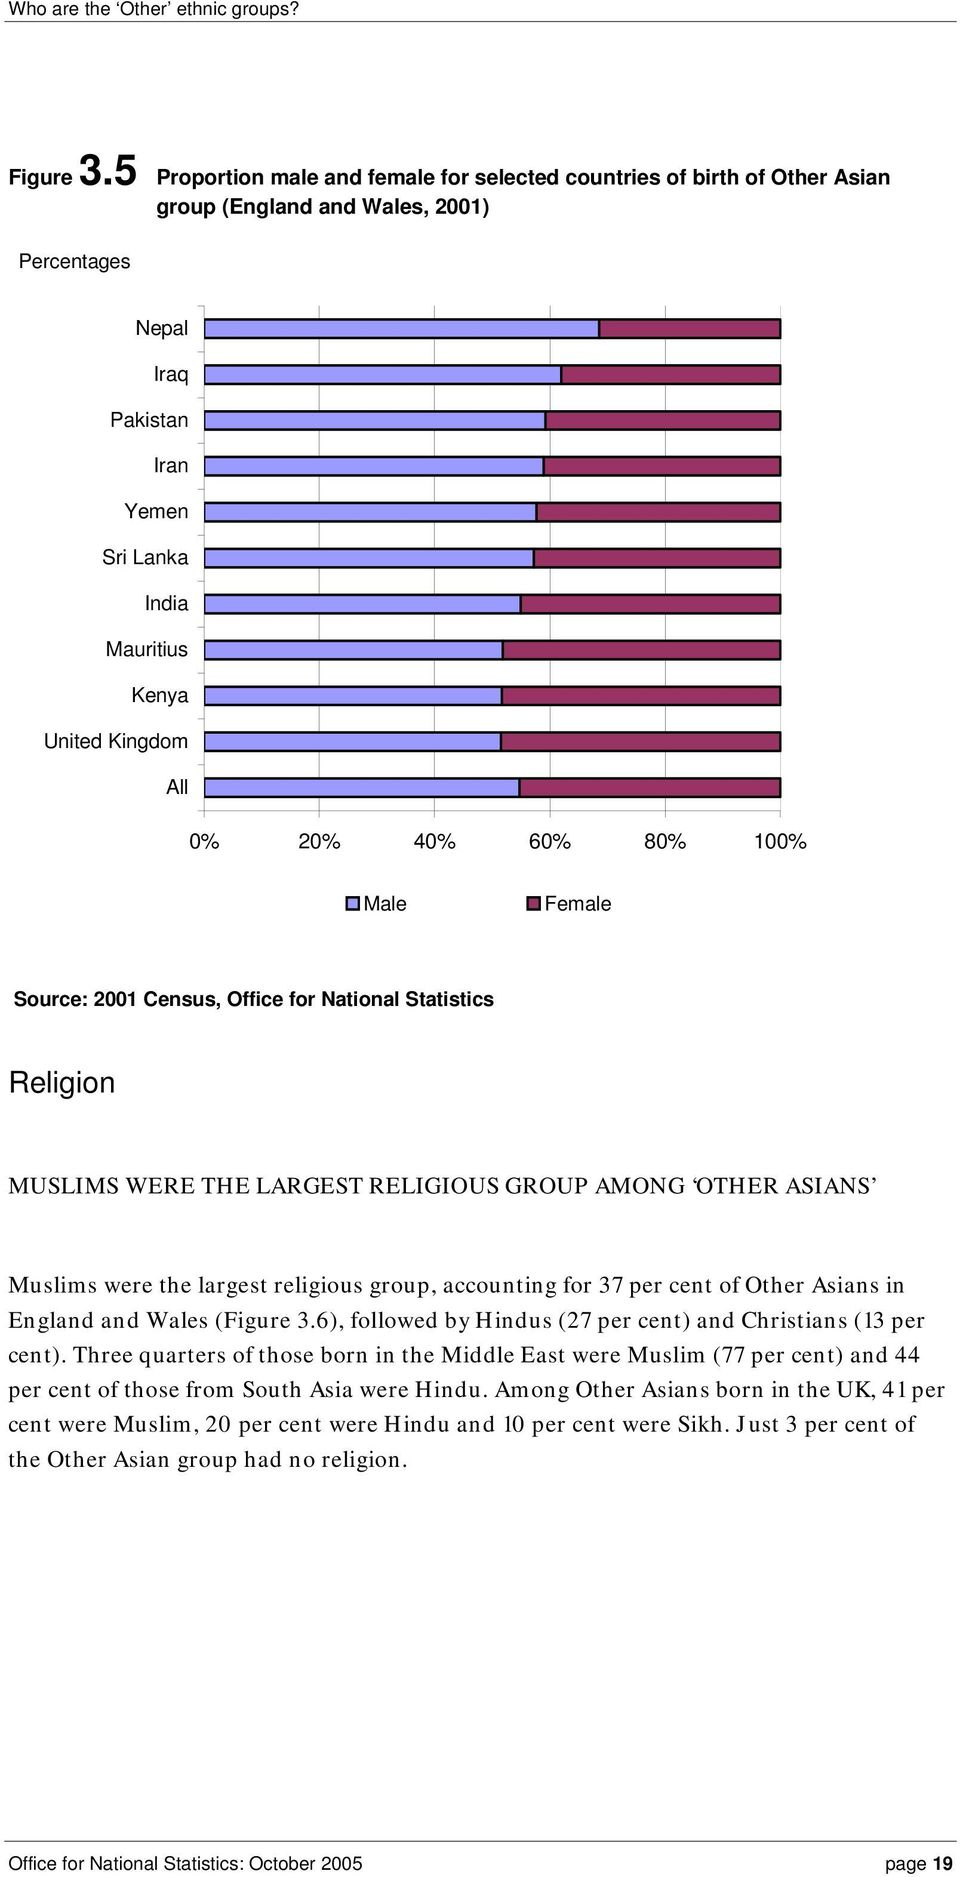 Female Religion MUSLIMS WERE THE LARGEST RELIGIOUS GROUP AMONG OTHER ASIANS Muslims were the largest religious group, accounting for 37 per cent of Other Asians in England and Wales (6), followed by